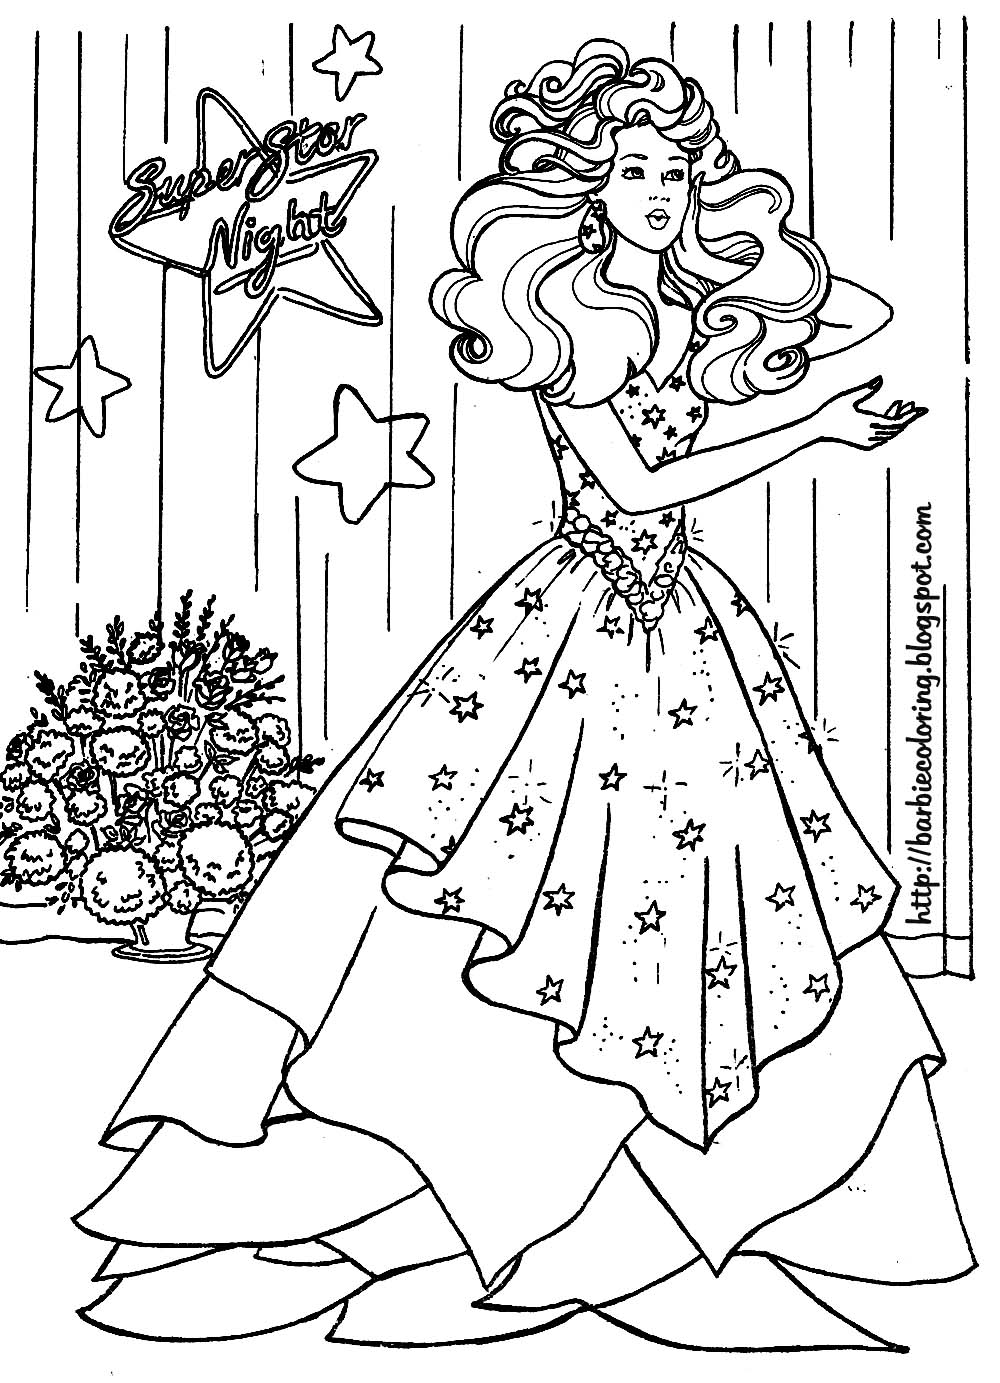 barbie coloring book barbie coloring pages barbie bride and barbie superstar barbie coloring book